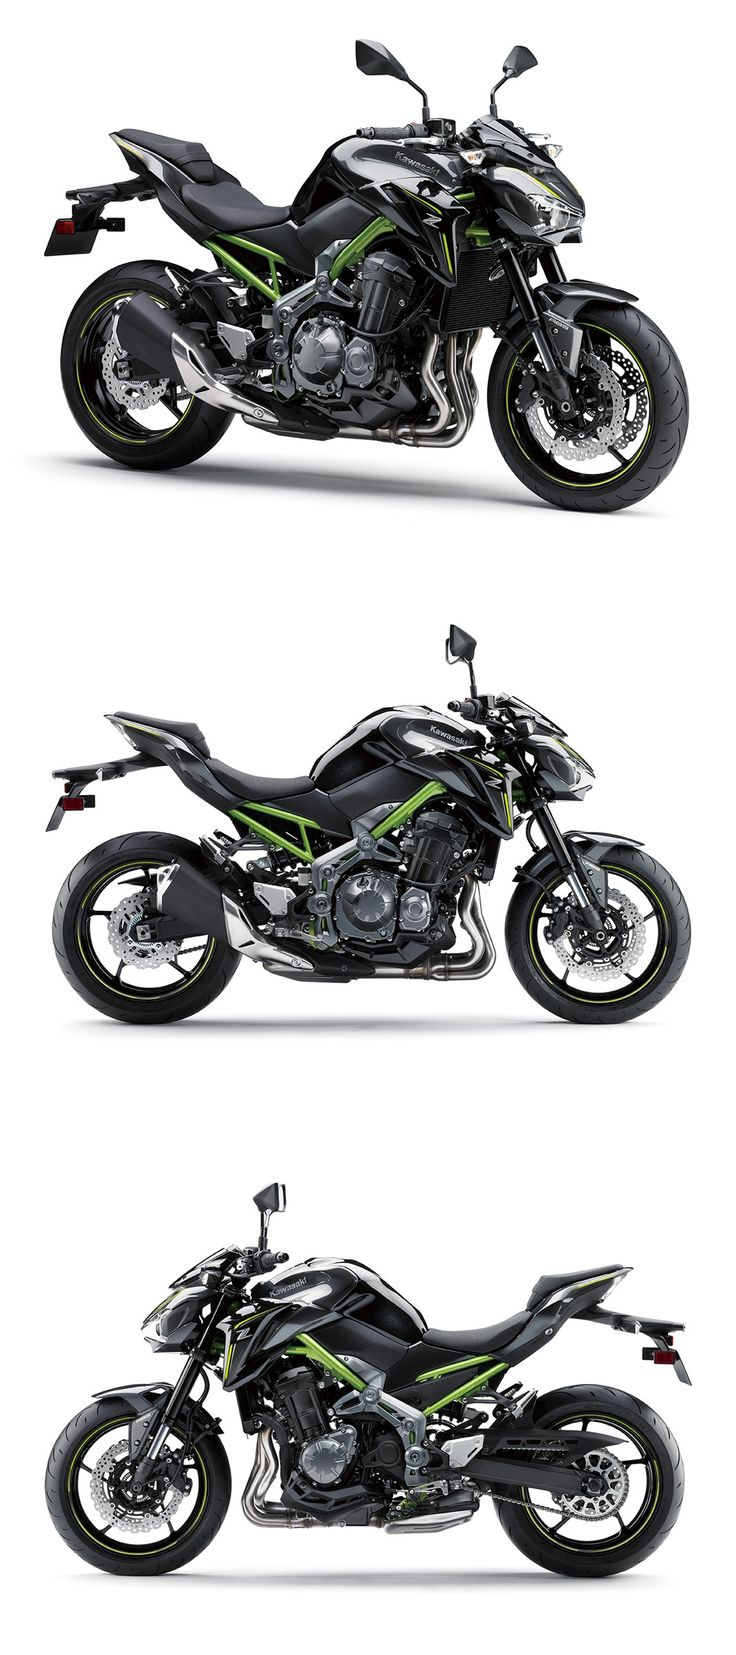 Top 5 150cc 160cc motorcycles in the country indian cars bikes - Kawasaki Z900 To Be Launched In India Soon